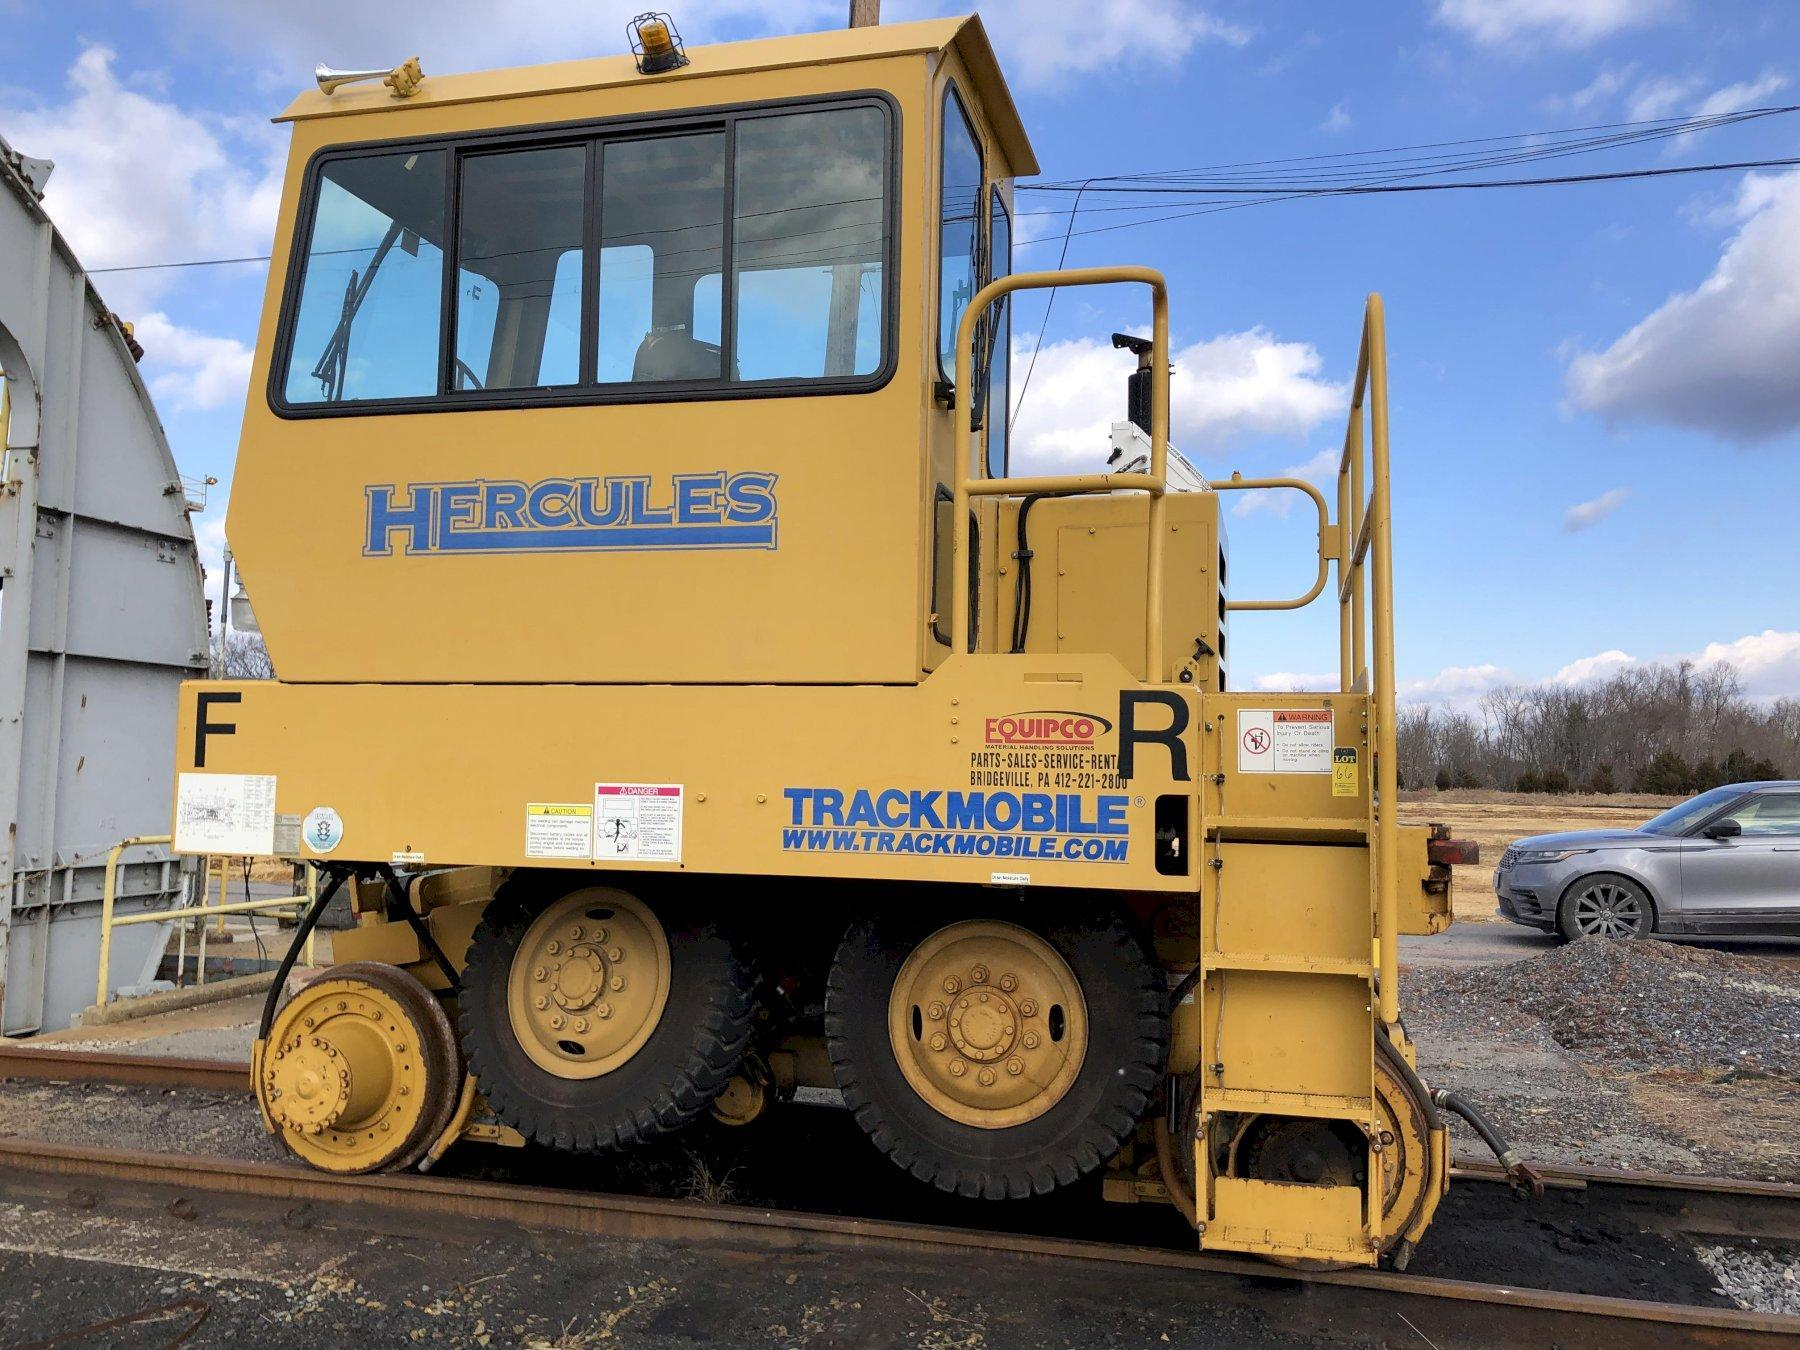 Trackmobile Hercules rail mover s/n lgn987531009 engine tm-1084476 s/n 46996757